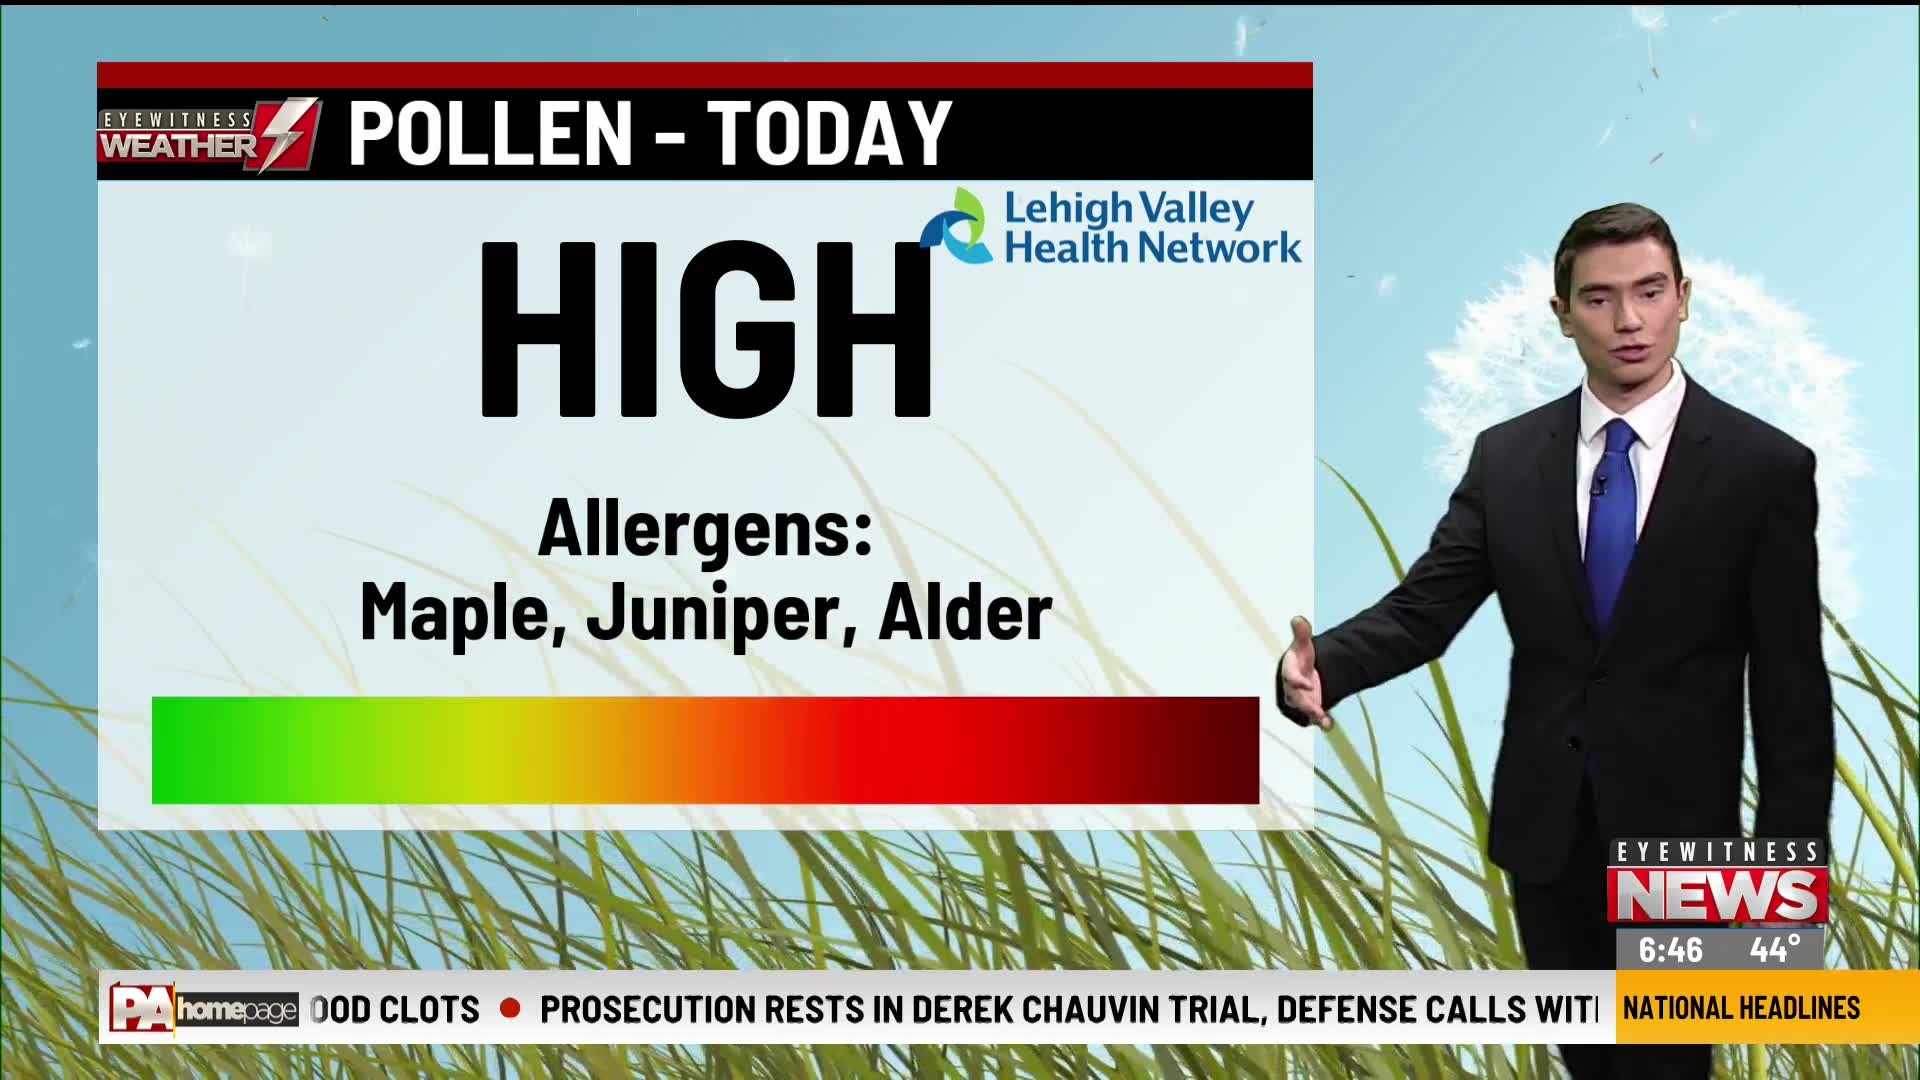 Allergy Alert April 14, 2020